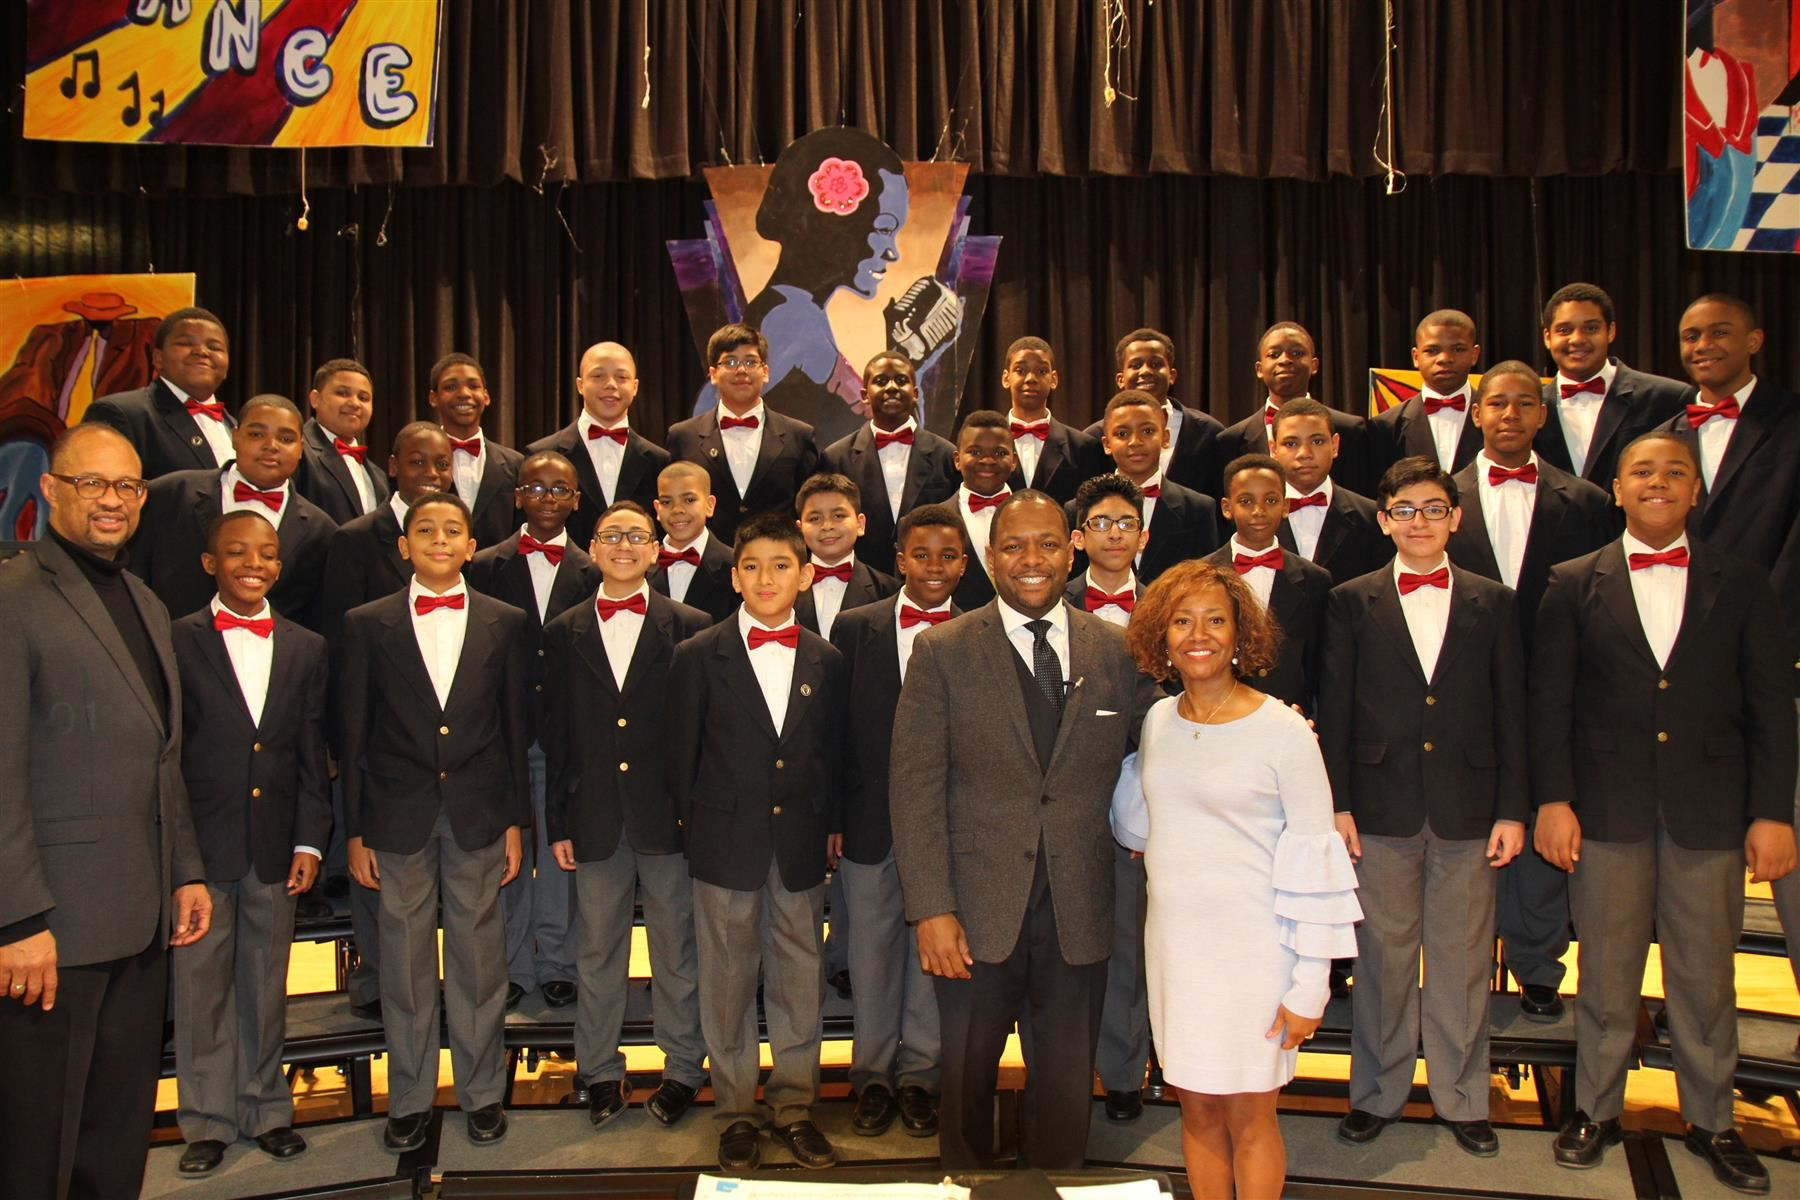 The Newark Boys Choir returns to Ronald Reagan Academy School No. 30